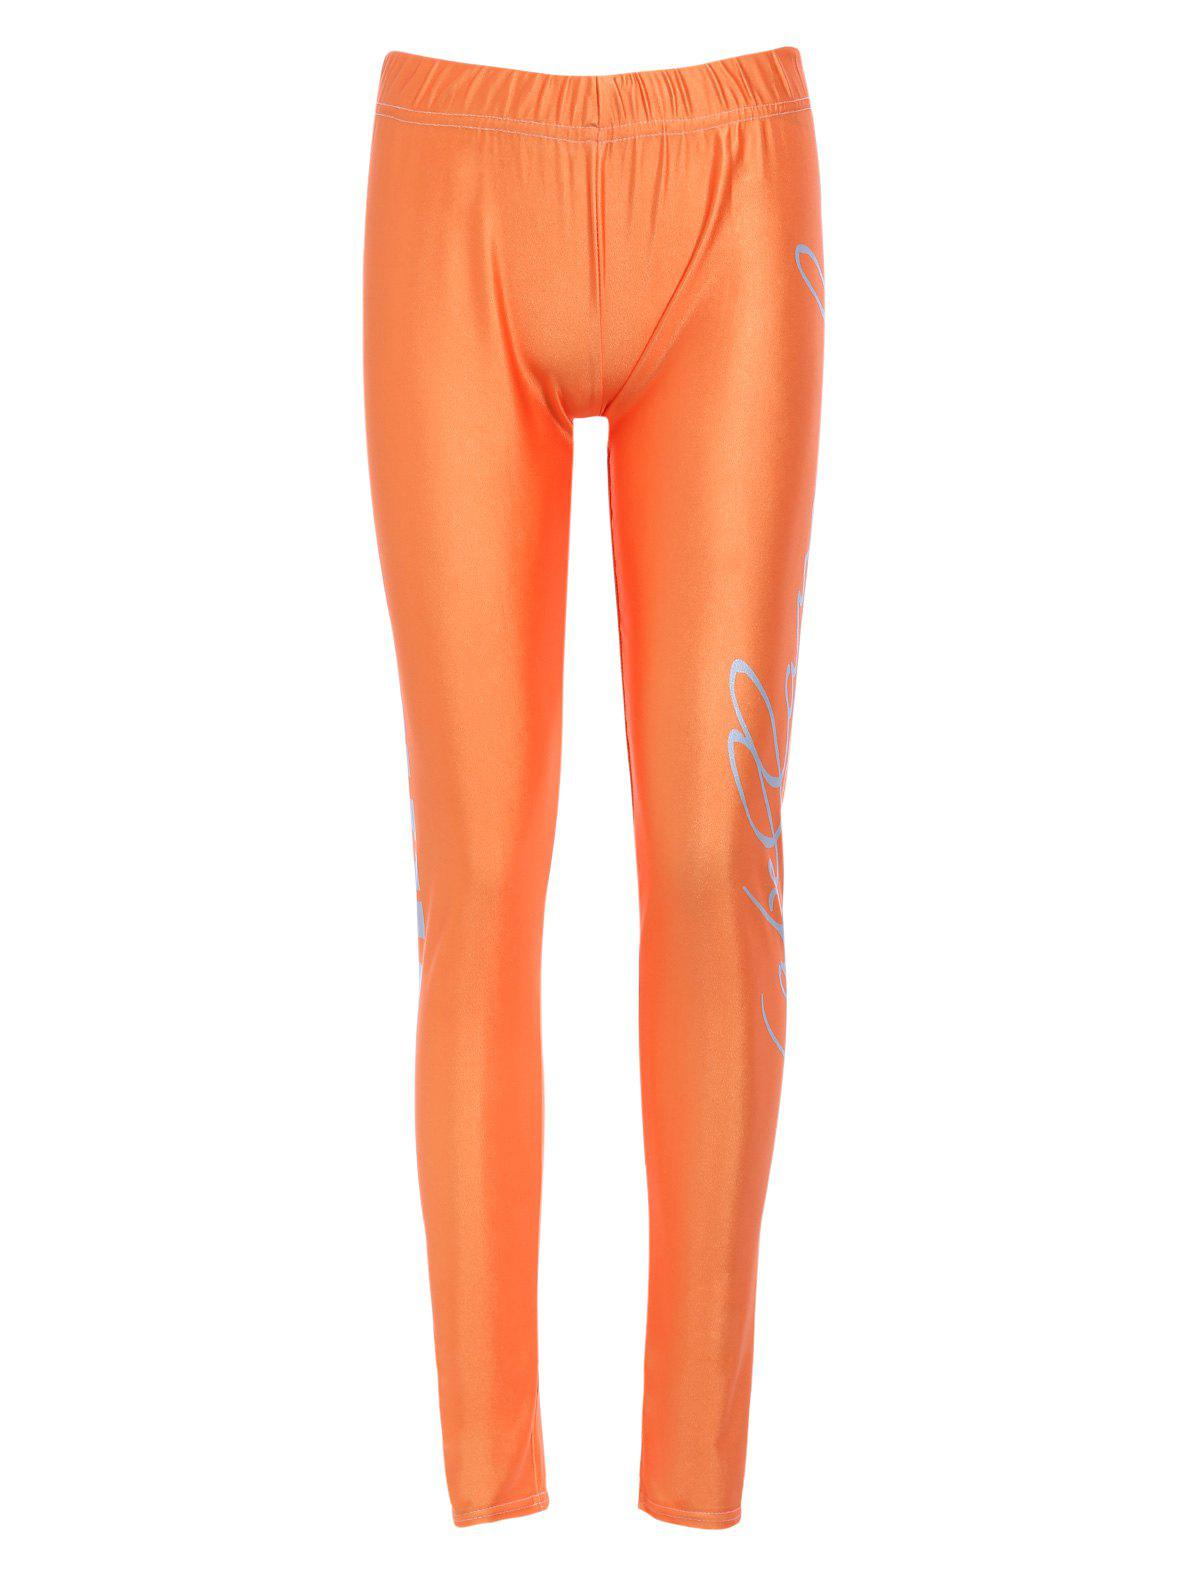 Sports Elastic Waist High-Waisted Bodycon Letter Print Women's Leggings - ORANGE M